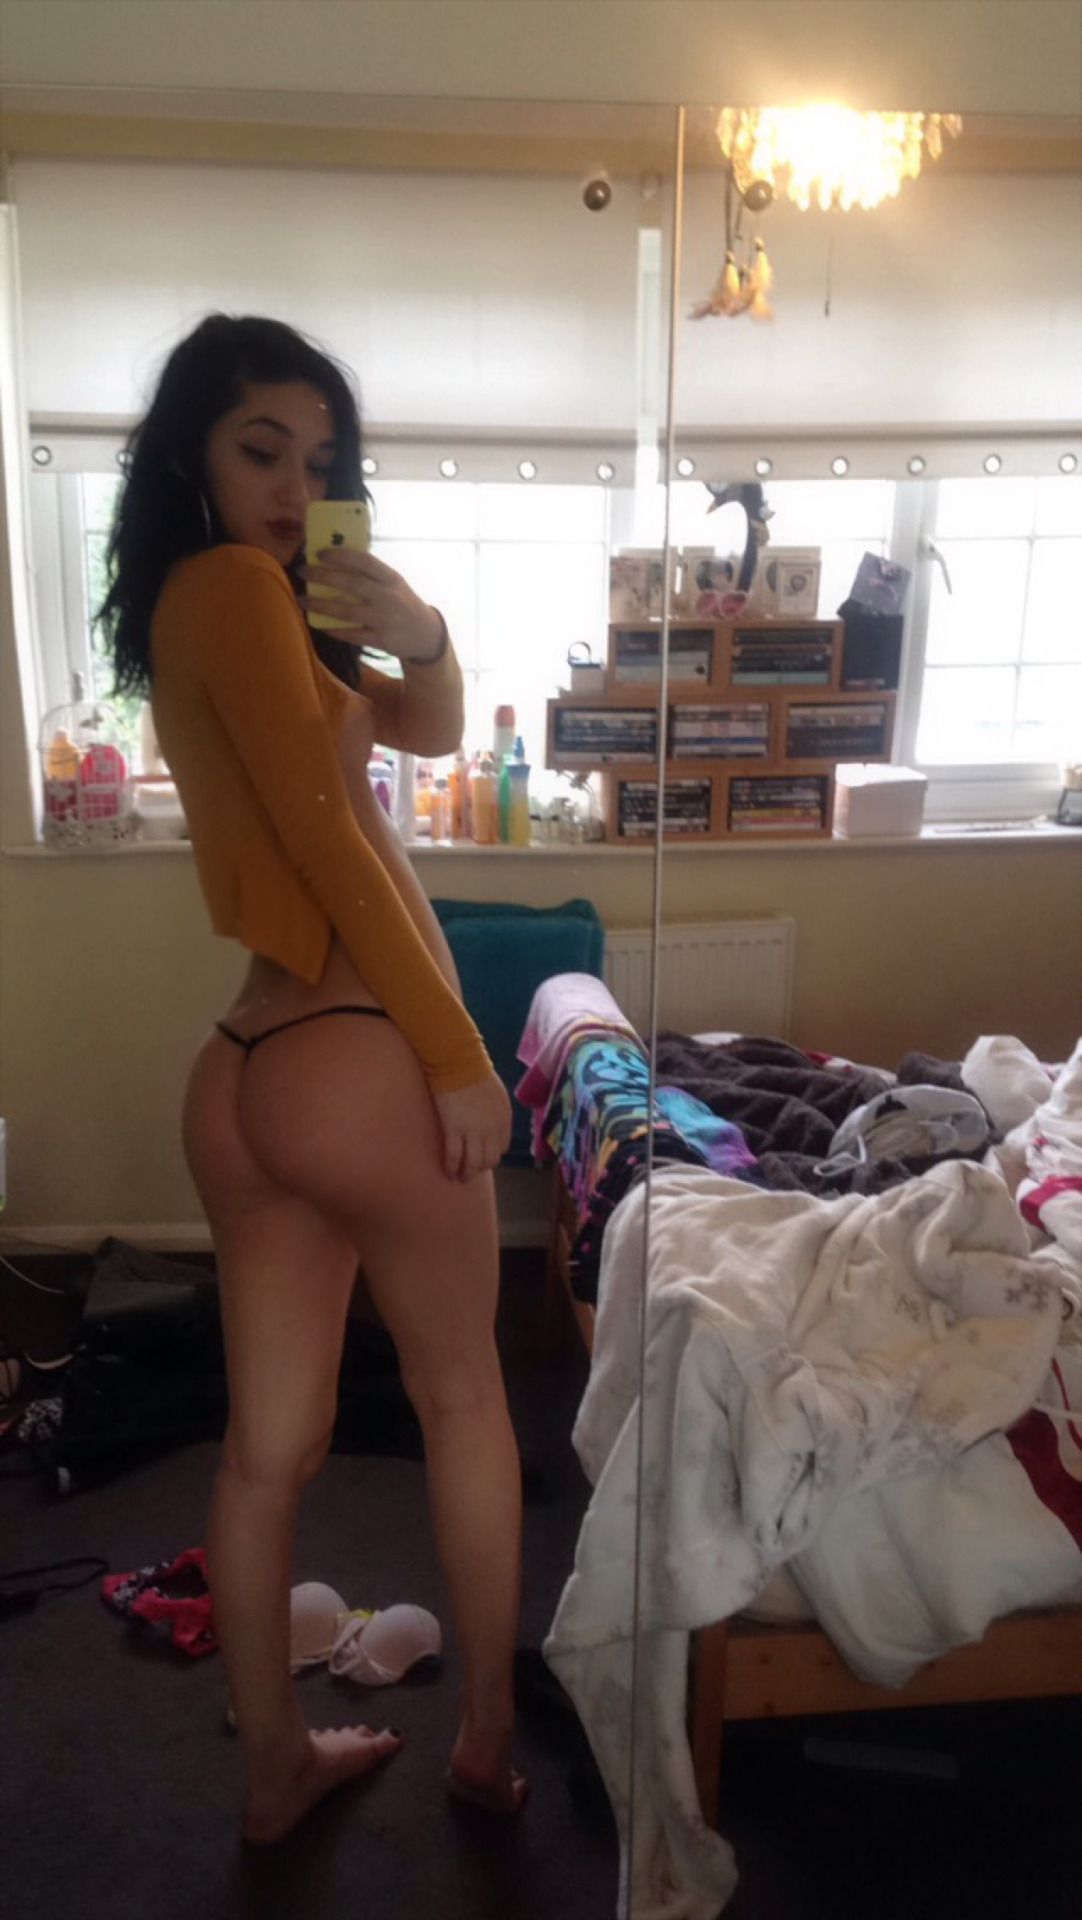 Gorgeous Instagram teen babe shows her pussy | Nude ...